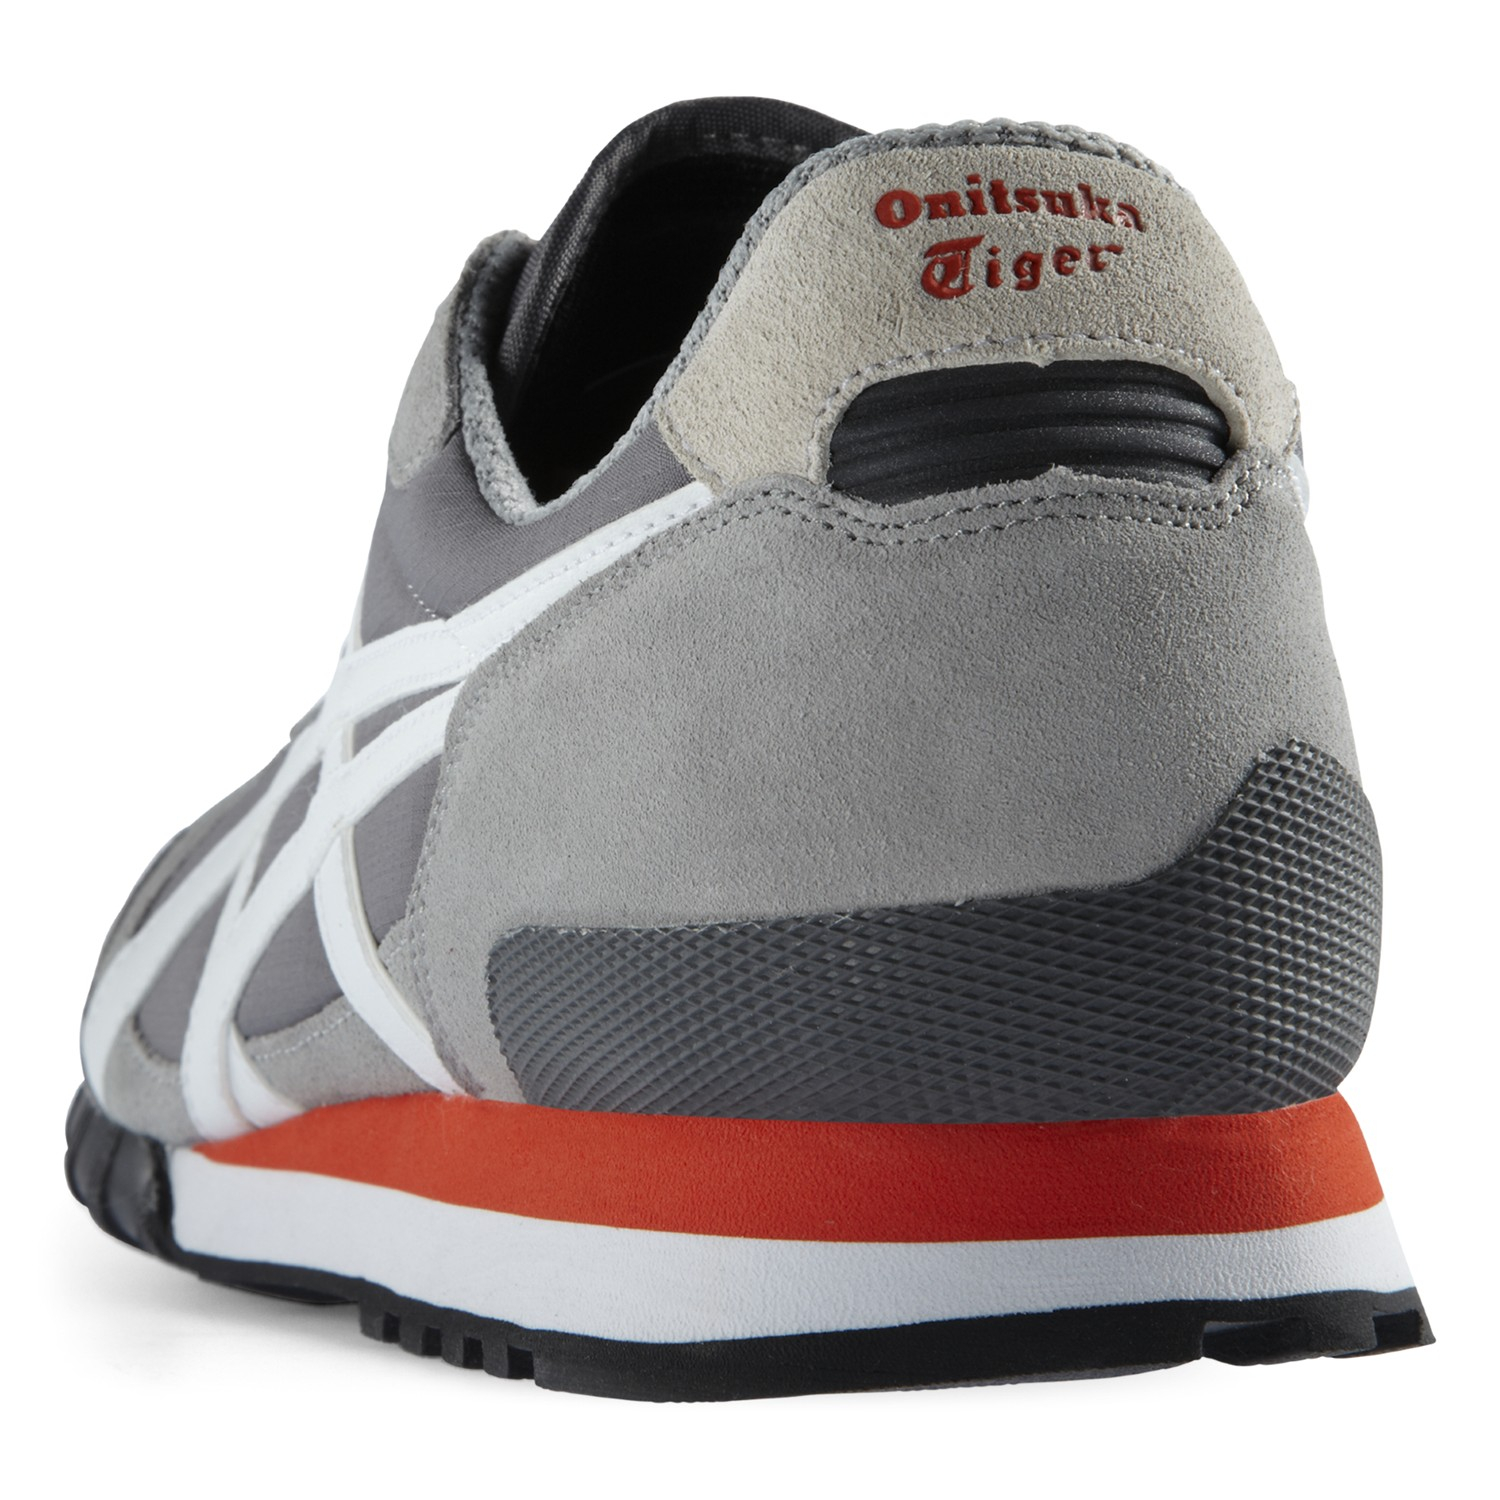 Onitsuka Tiger Colorado Eighty-five Trainers in Grey/White (Grey) for Men